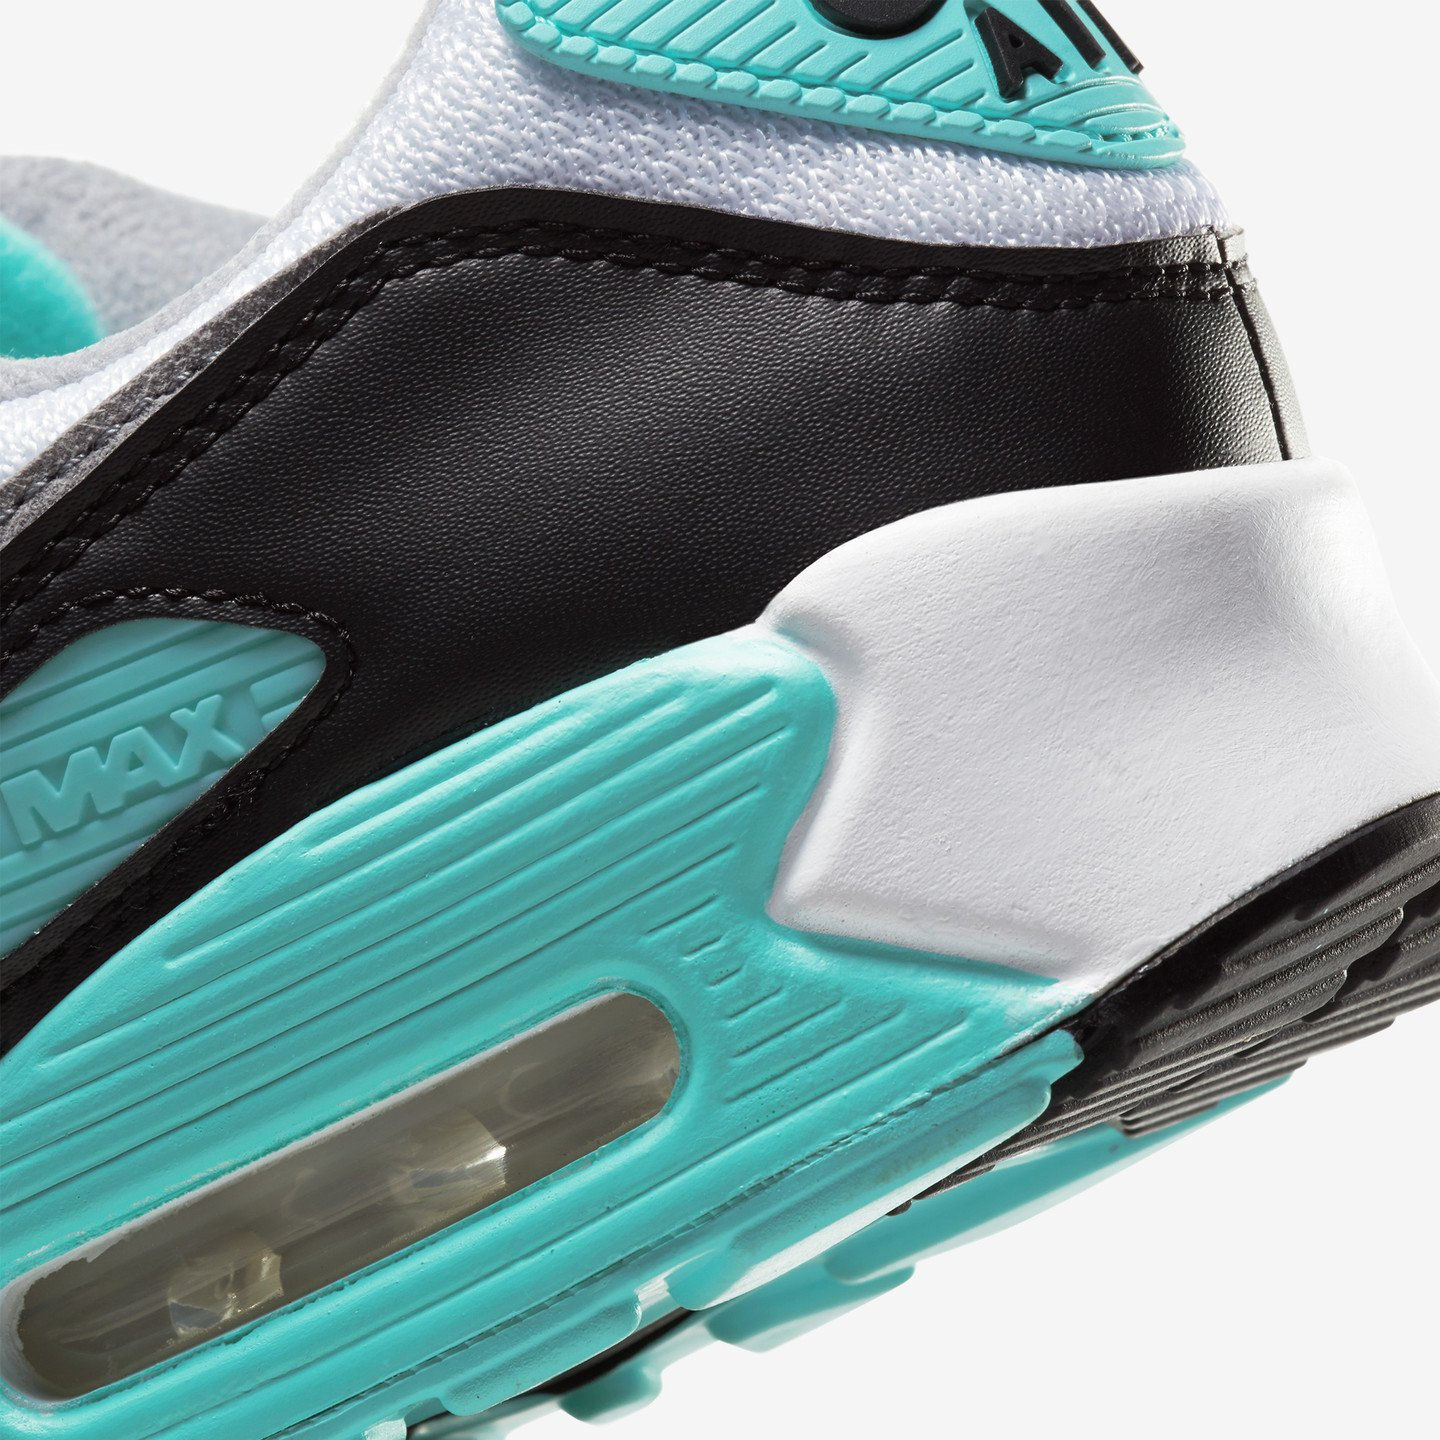 Nike Air Max 90 OG 'Fresh Mint' White / Particle Grey / Hyper Turq / Black CD0881-100